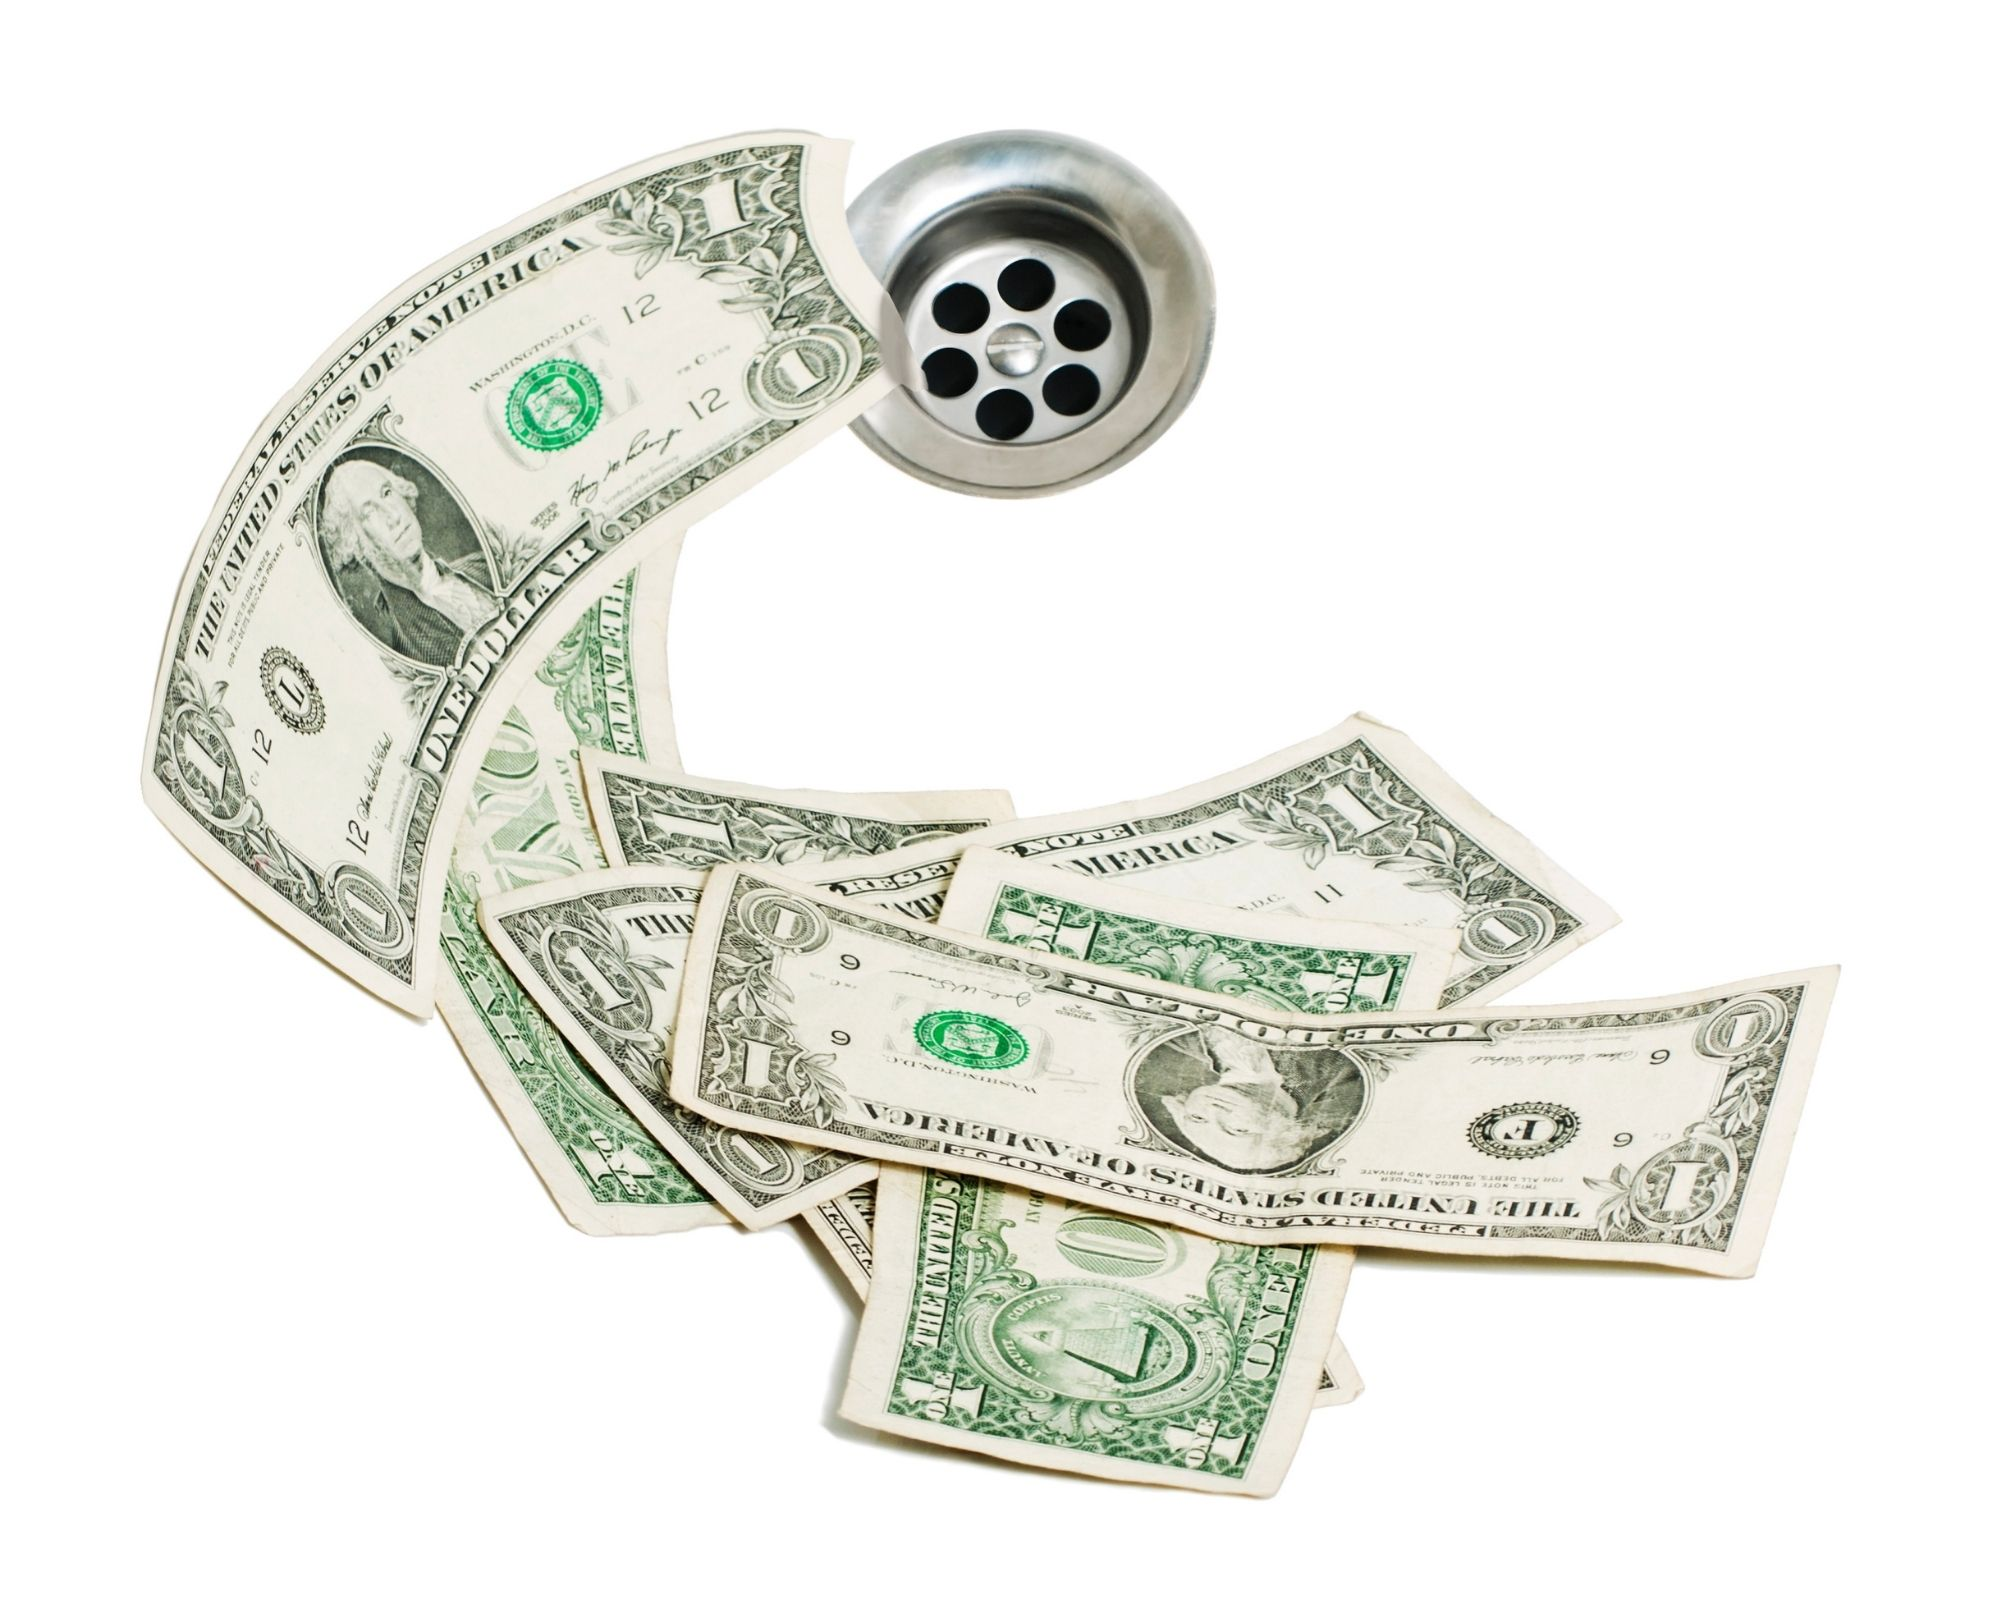 Money in a bathtub by the drain - indicating finding the right supplements can save you money. Including Boron